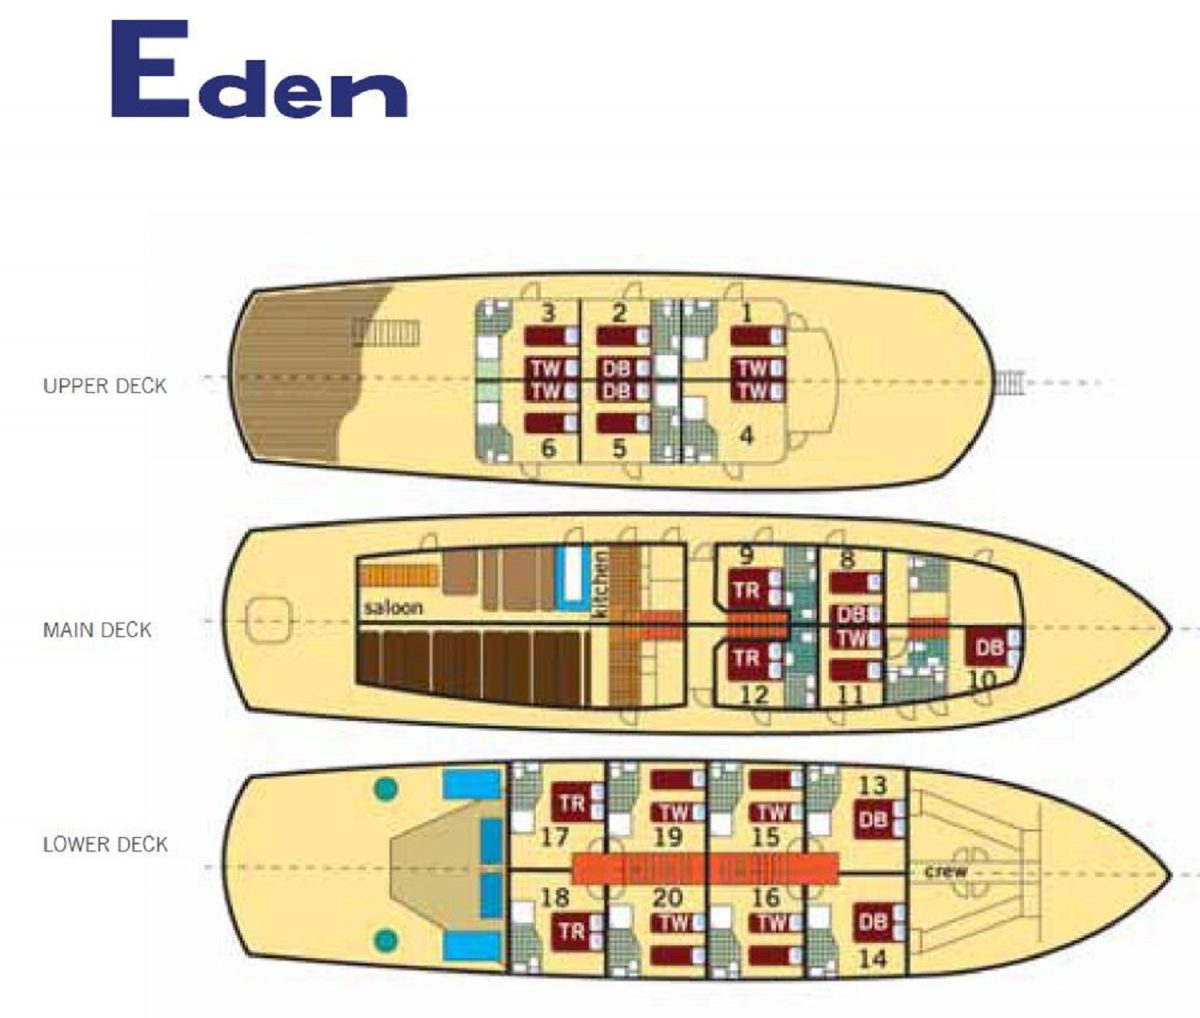 MS Eden Deck Plan